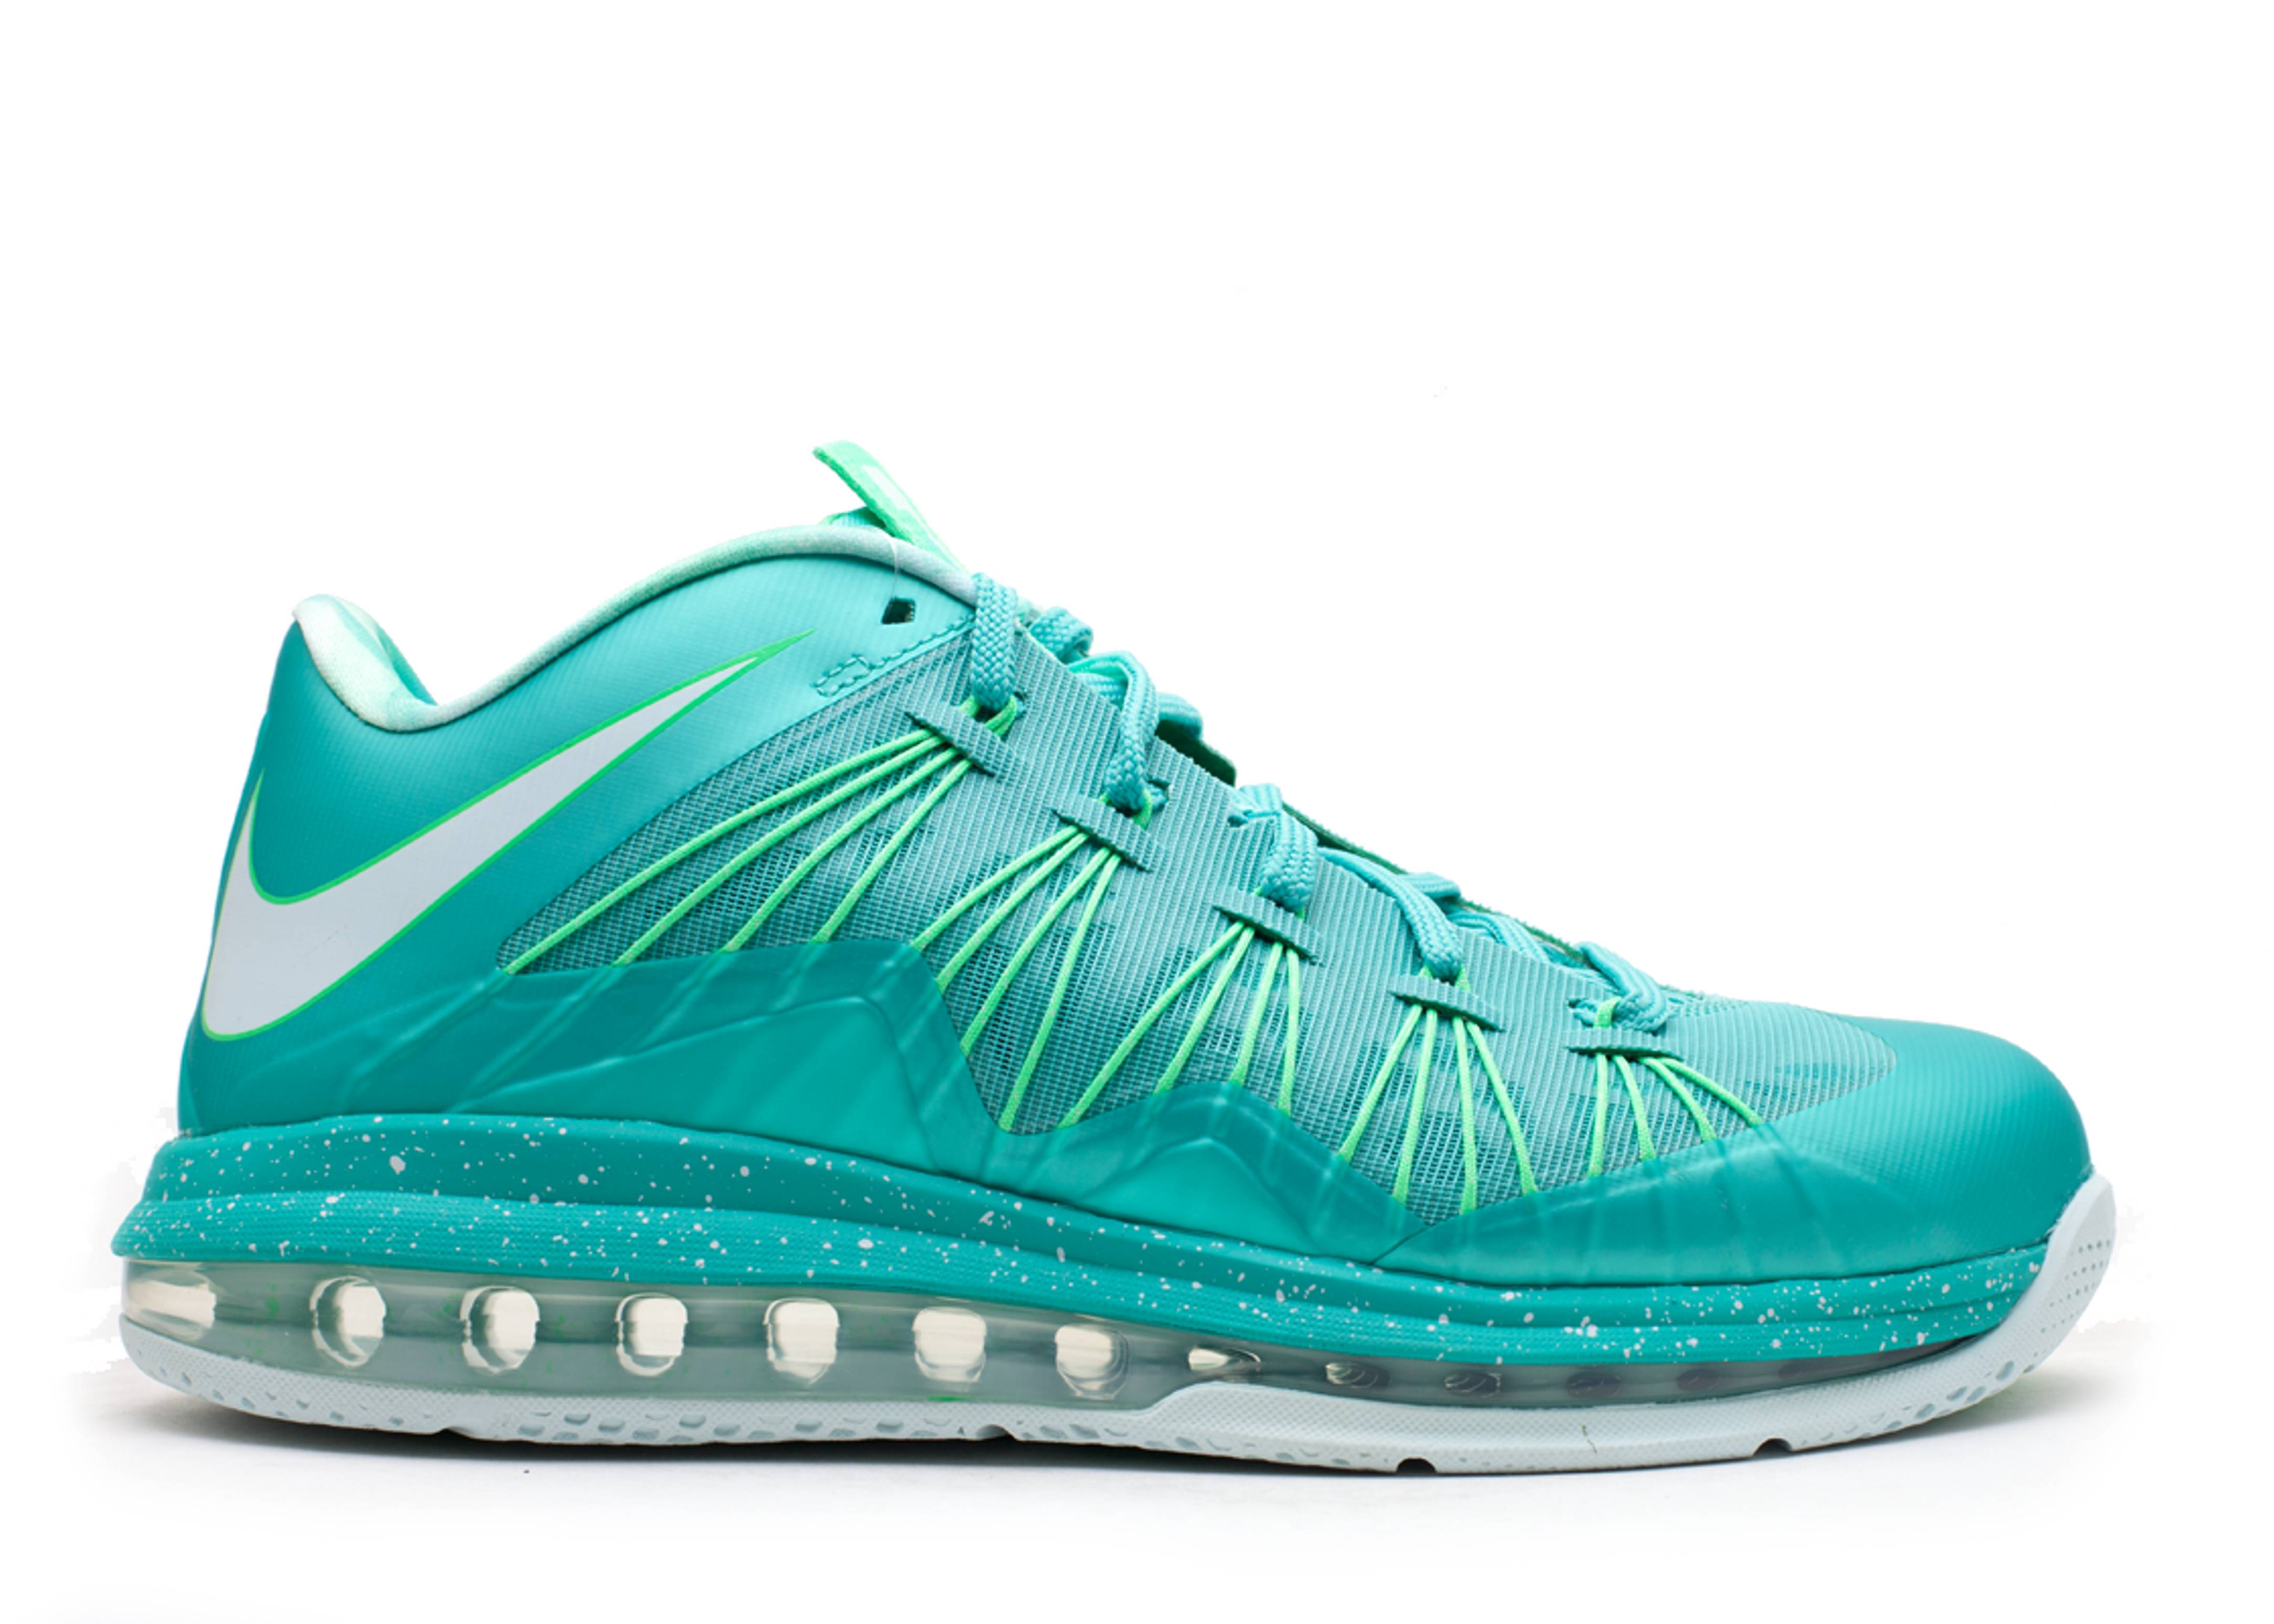 air max lebron 10 low \u0026quot;easter\u0026quot; - crystal mint/fbrglss-psn-grn | Flight Club